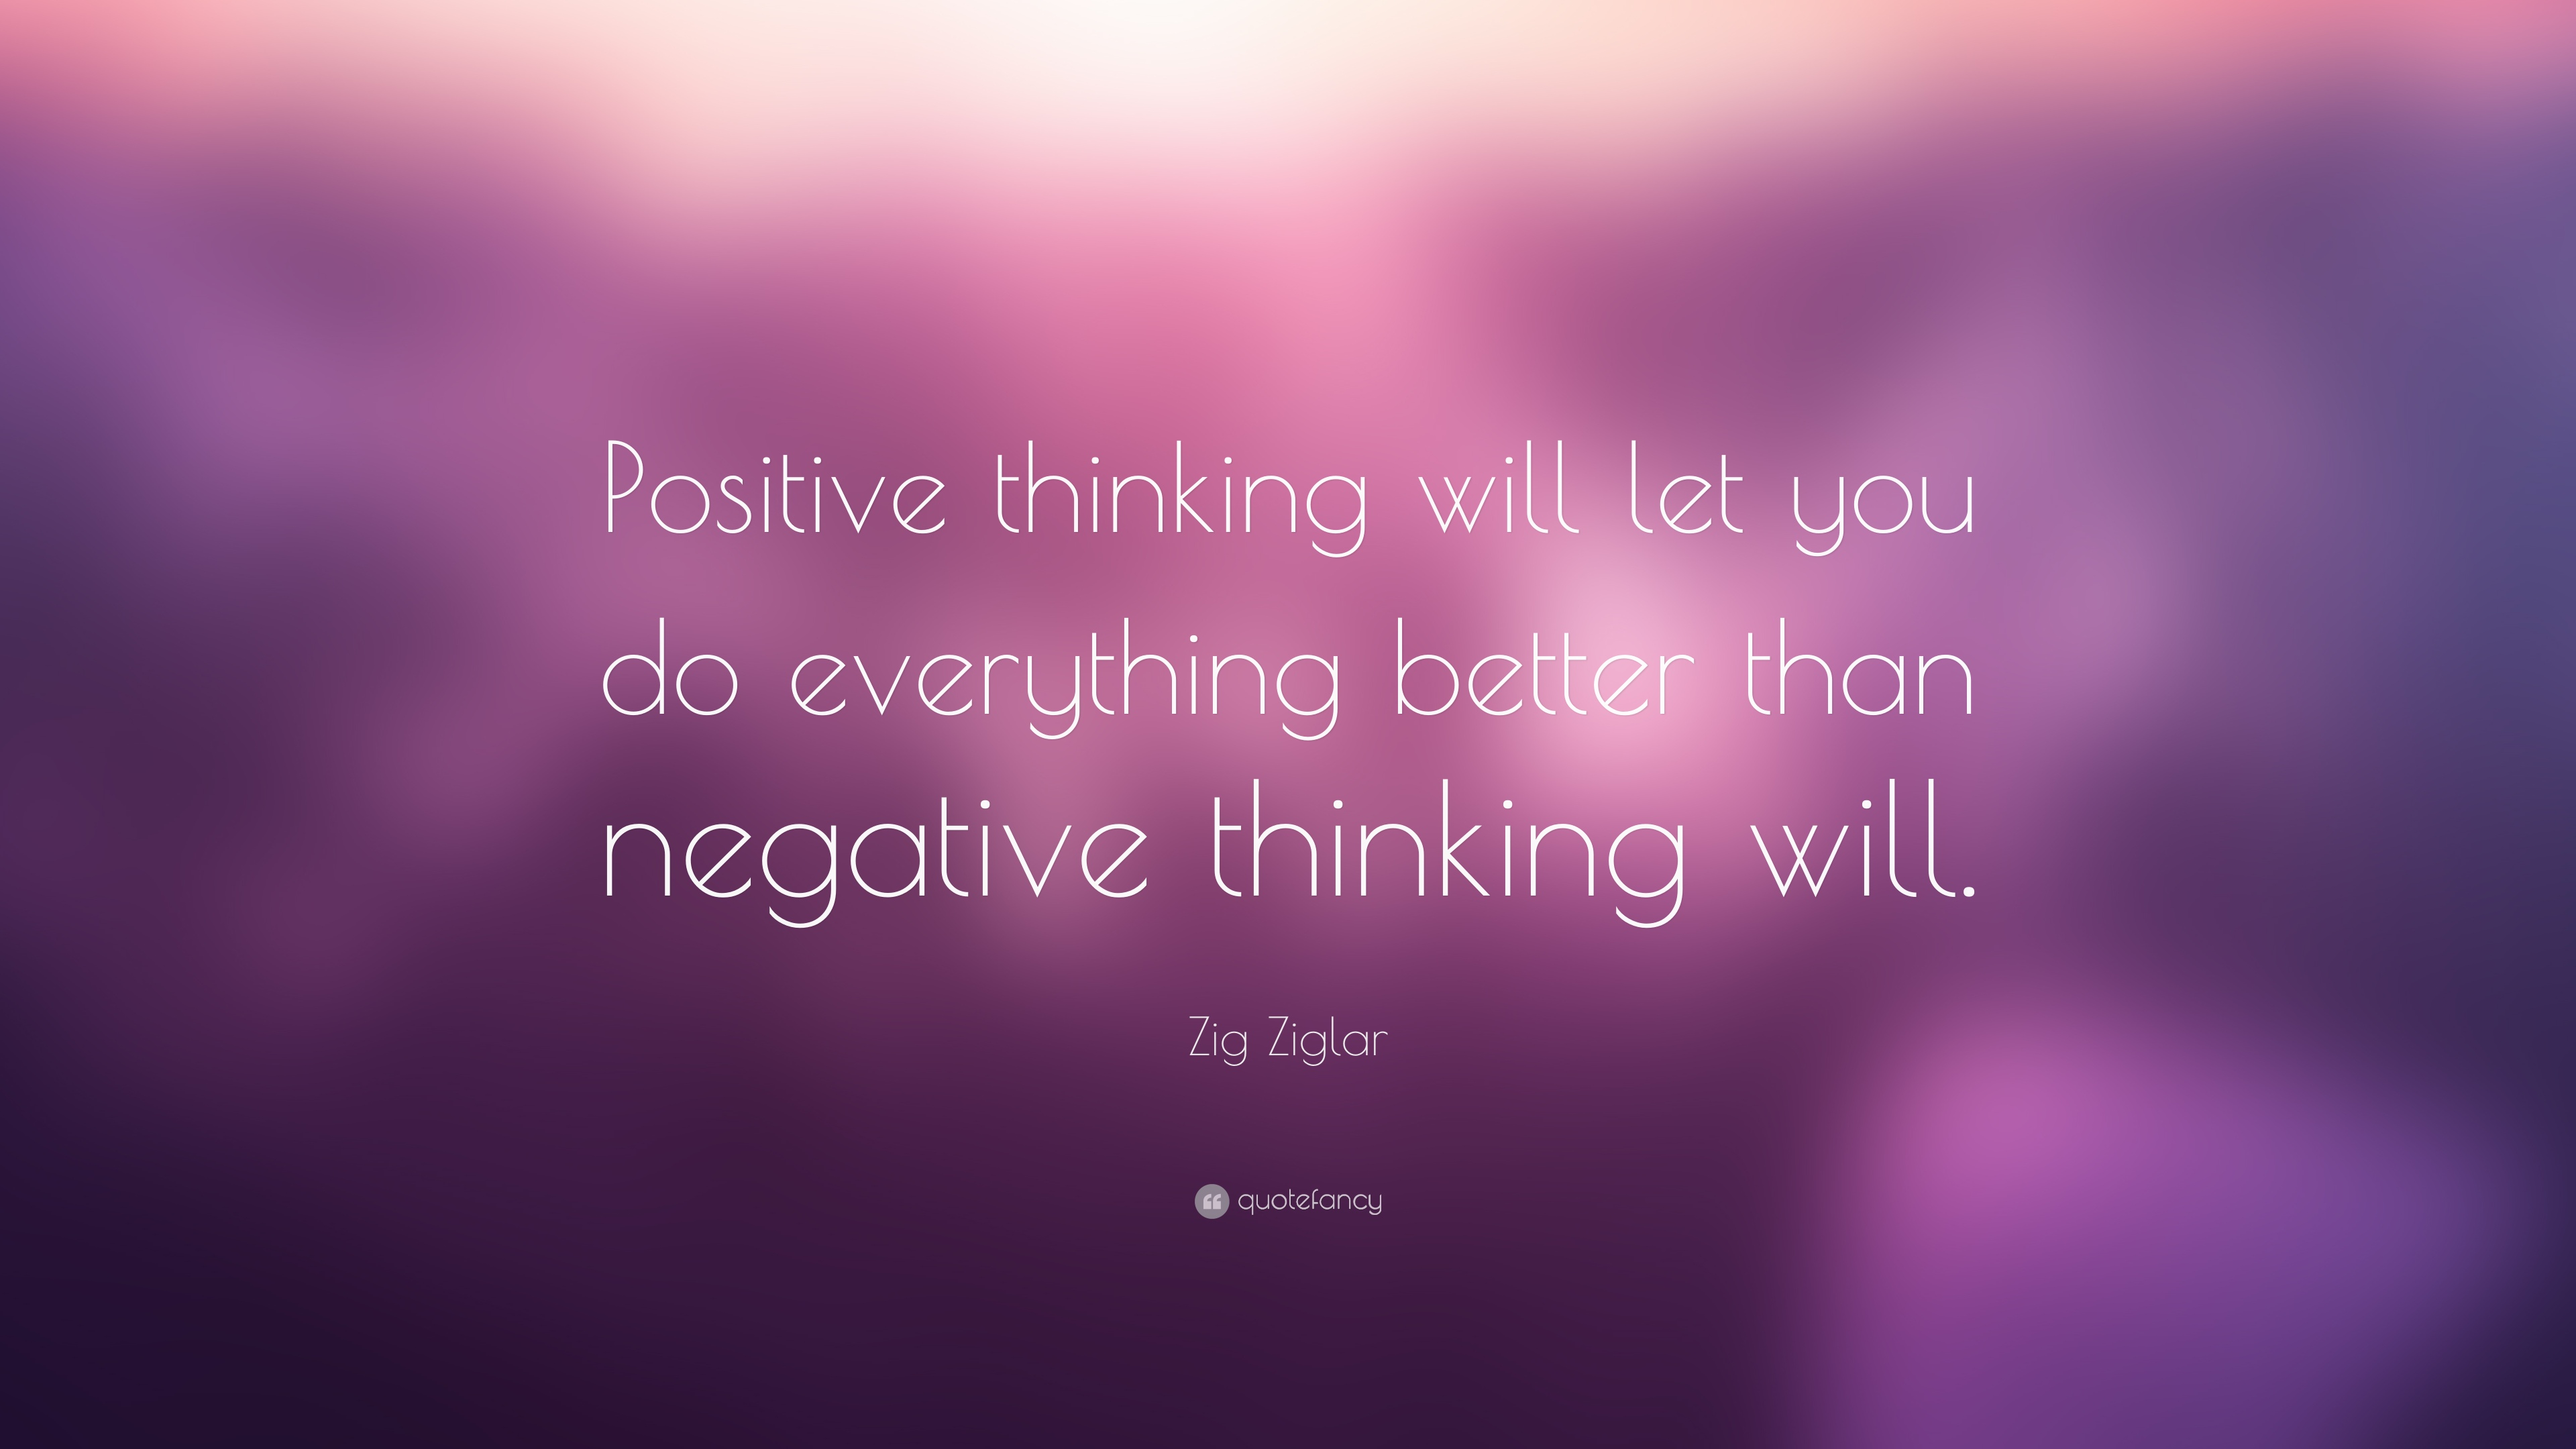 Attitude Quotes Positive Thinking Will Let You Do Everything Better Than Negative